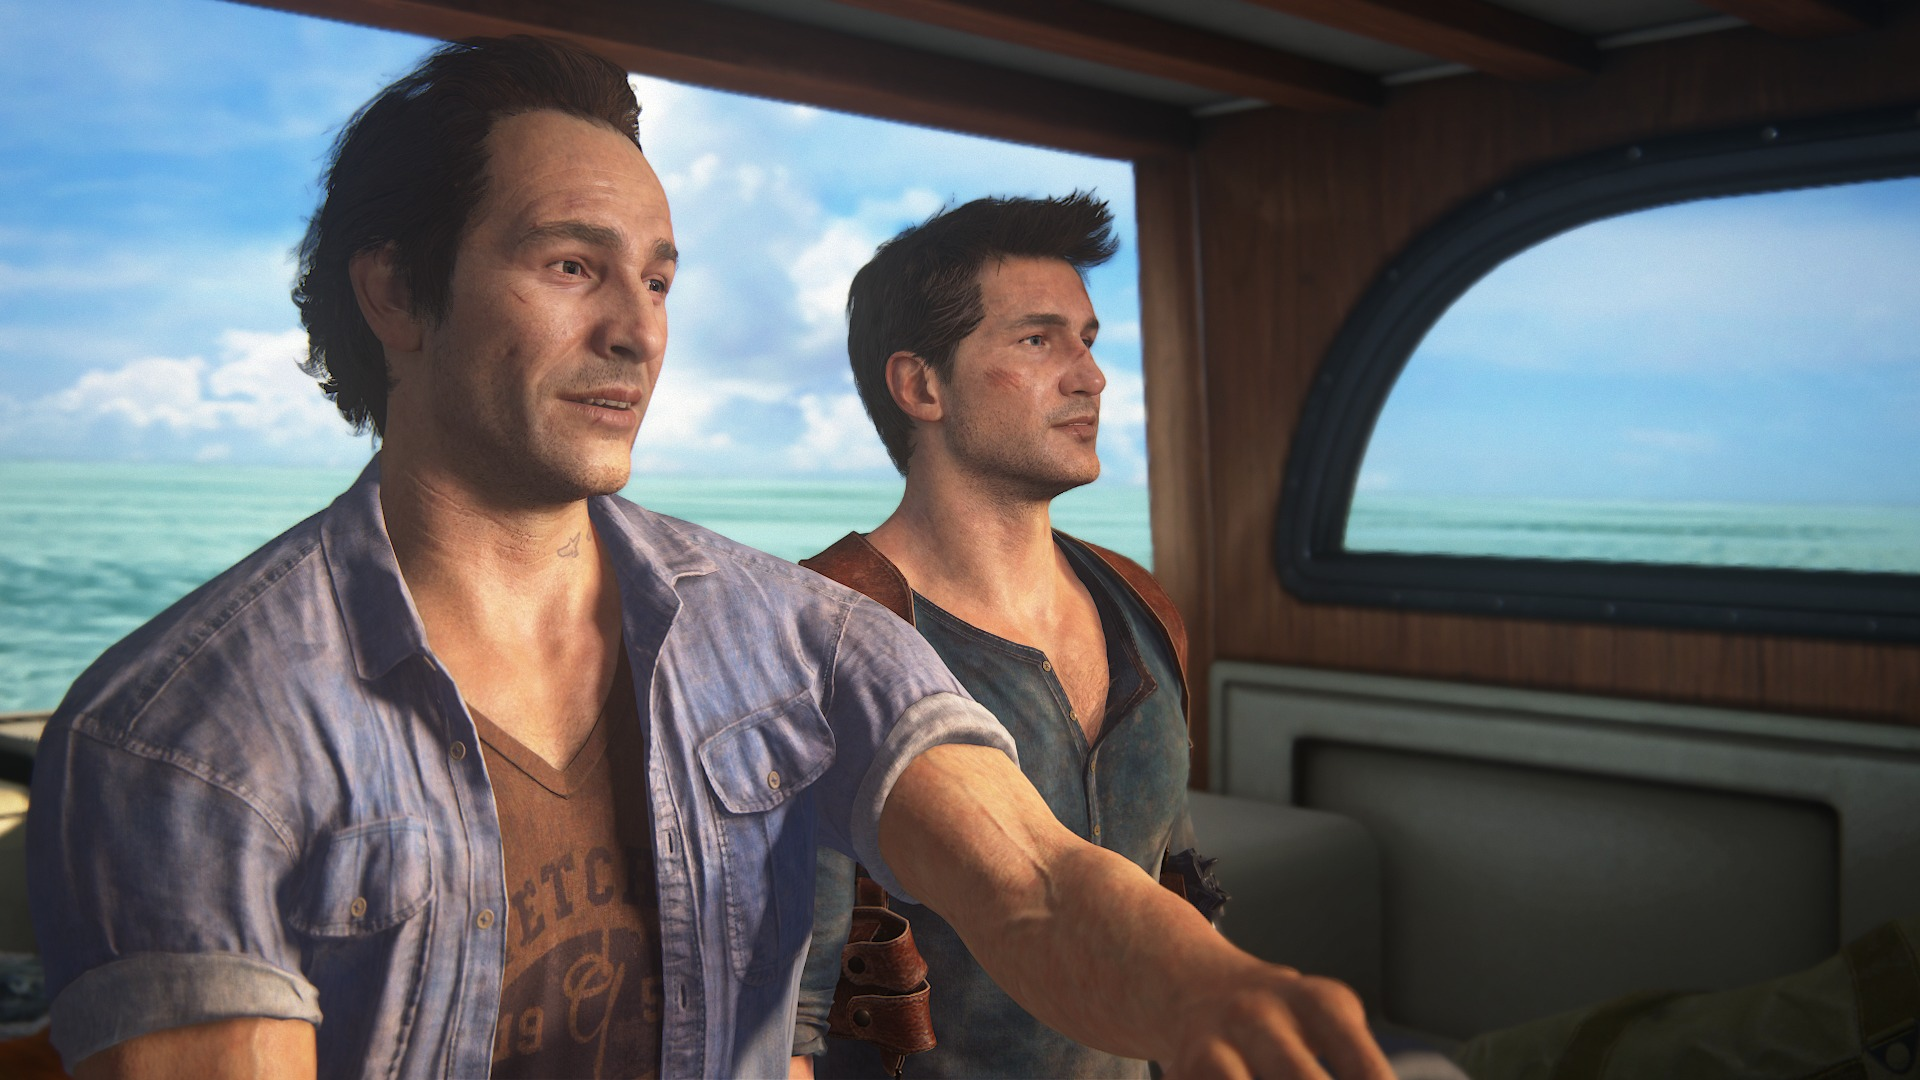 Uncharted 4 is the best (and possibly last) game of its kind - The Verge